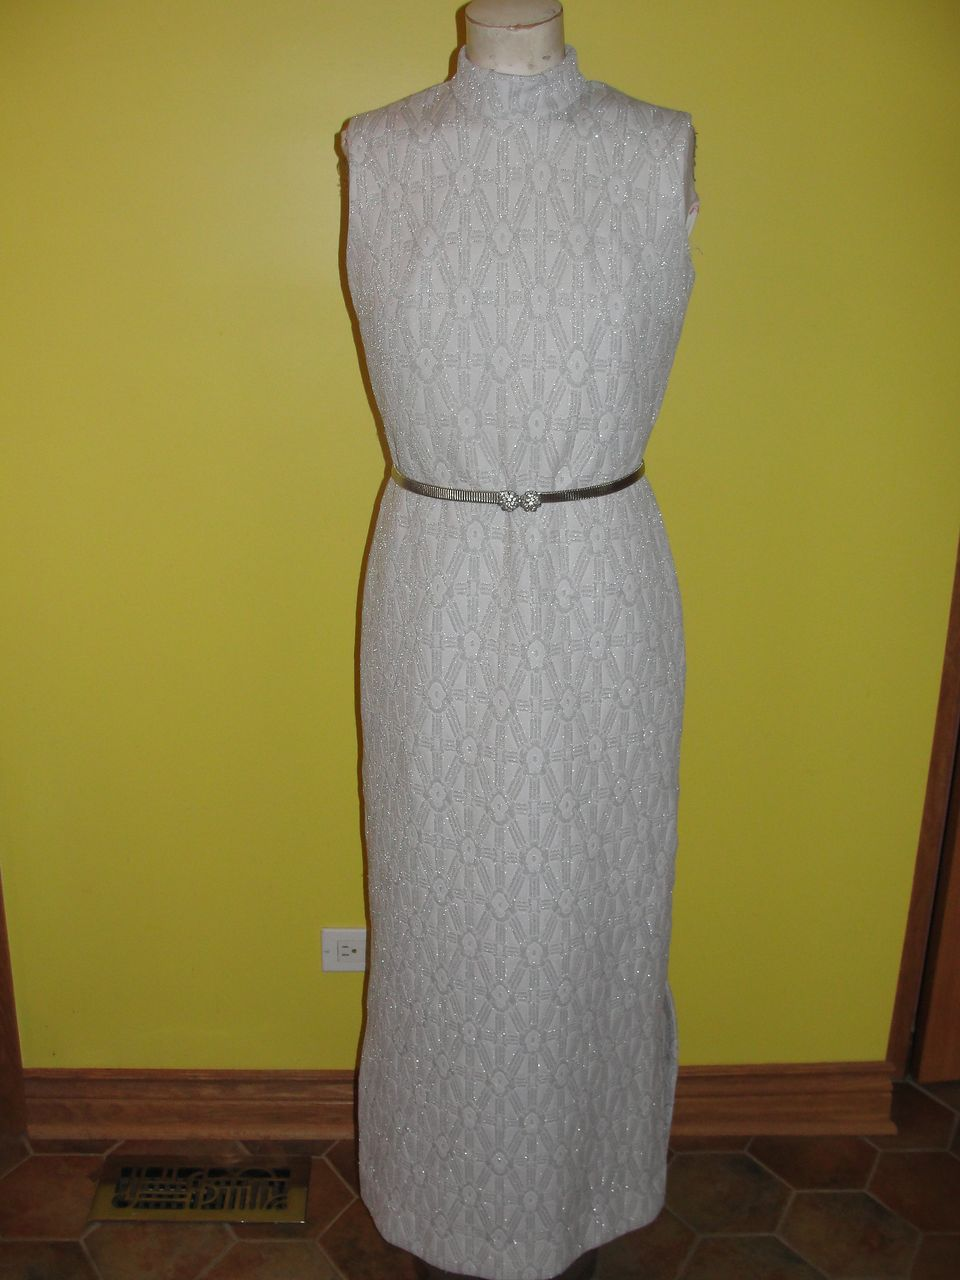 70's Slinky White and Silver Lurex Dress